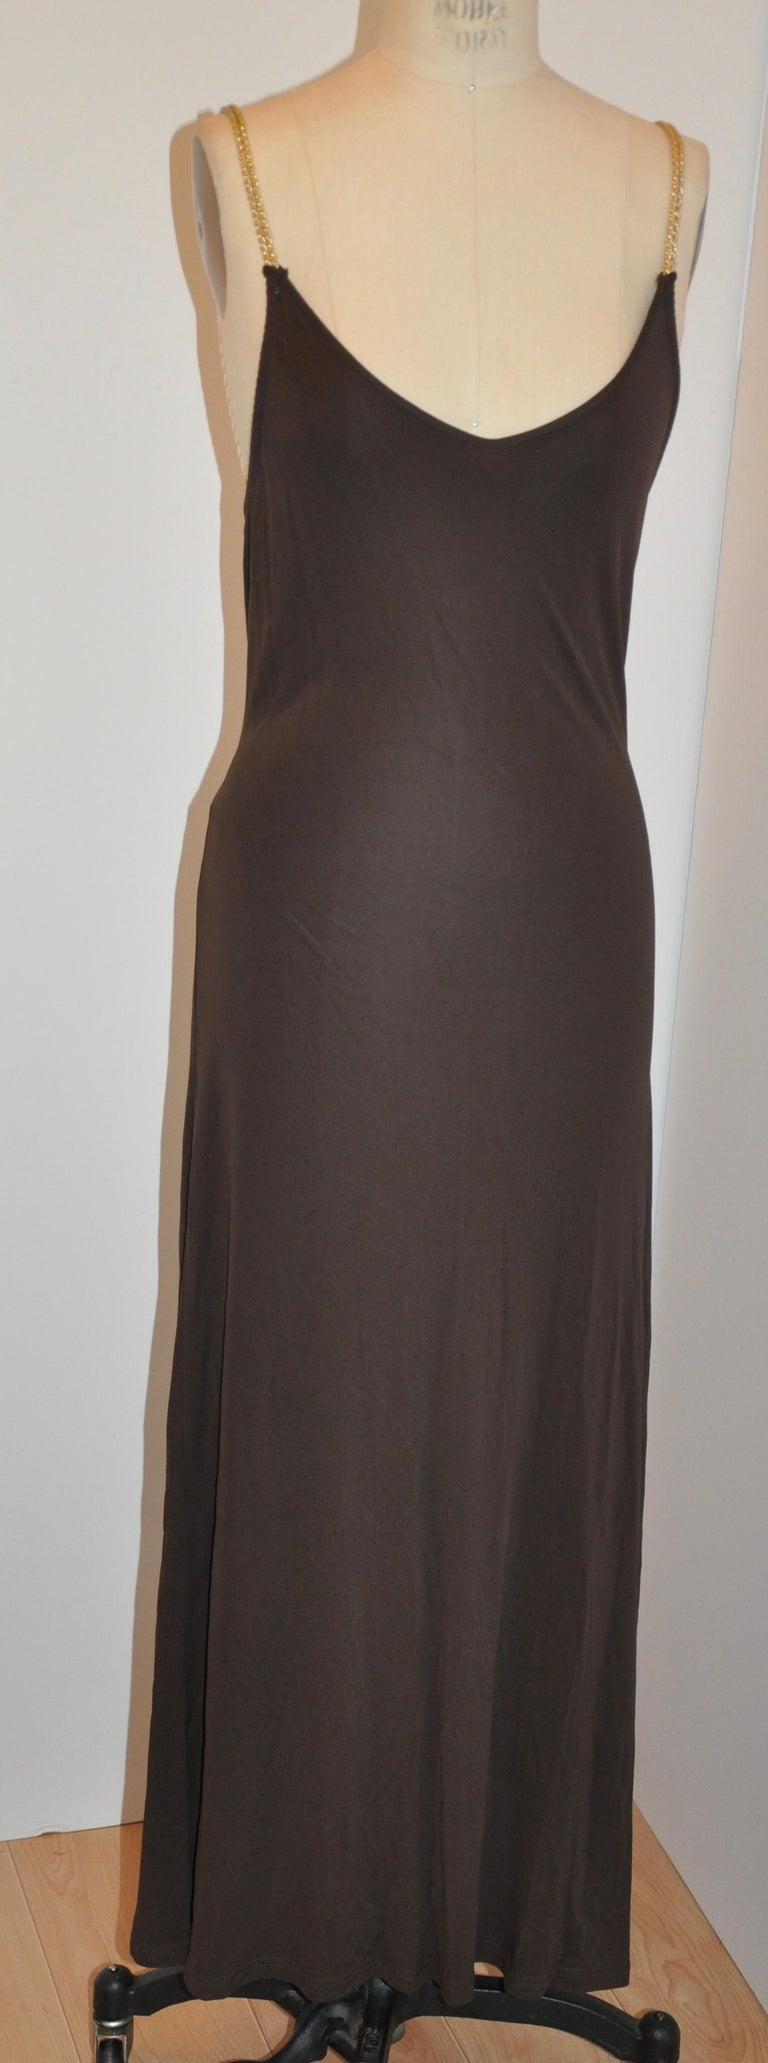 Celine Coco-Brown Silk-Blend Jersey Low-Cut Form-Fitting Maxi Dress For Sale 2